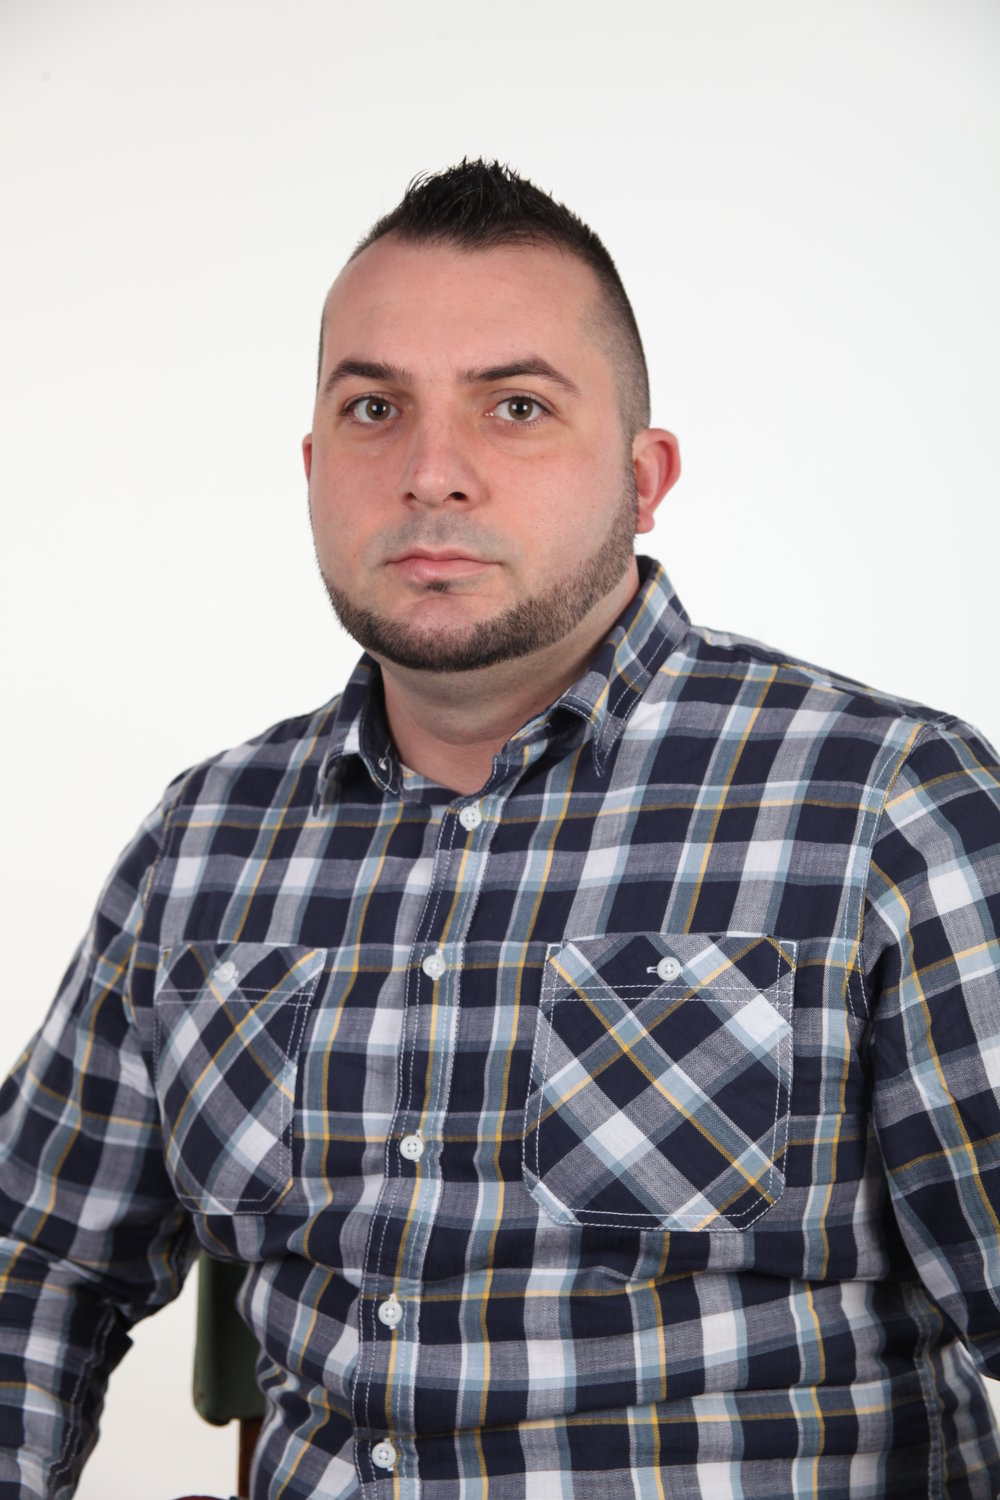 Alexandru Marginean Global IT Sourcing Specialist